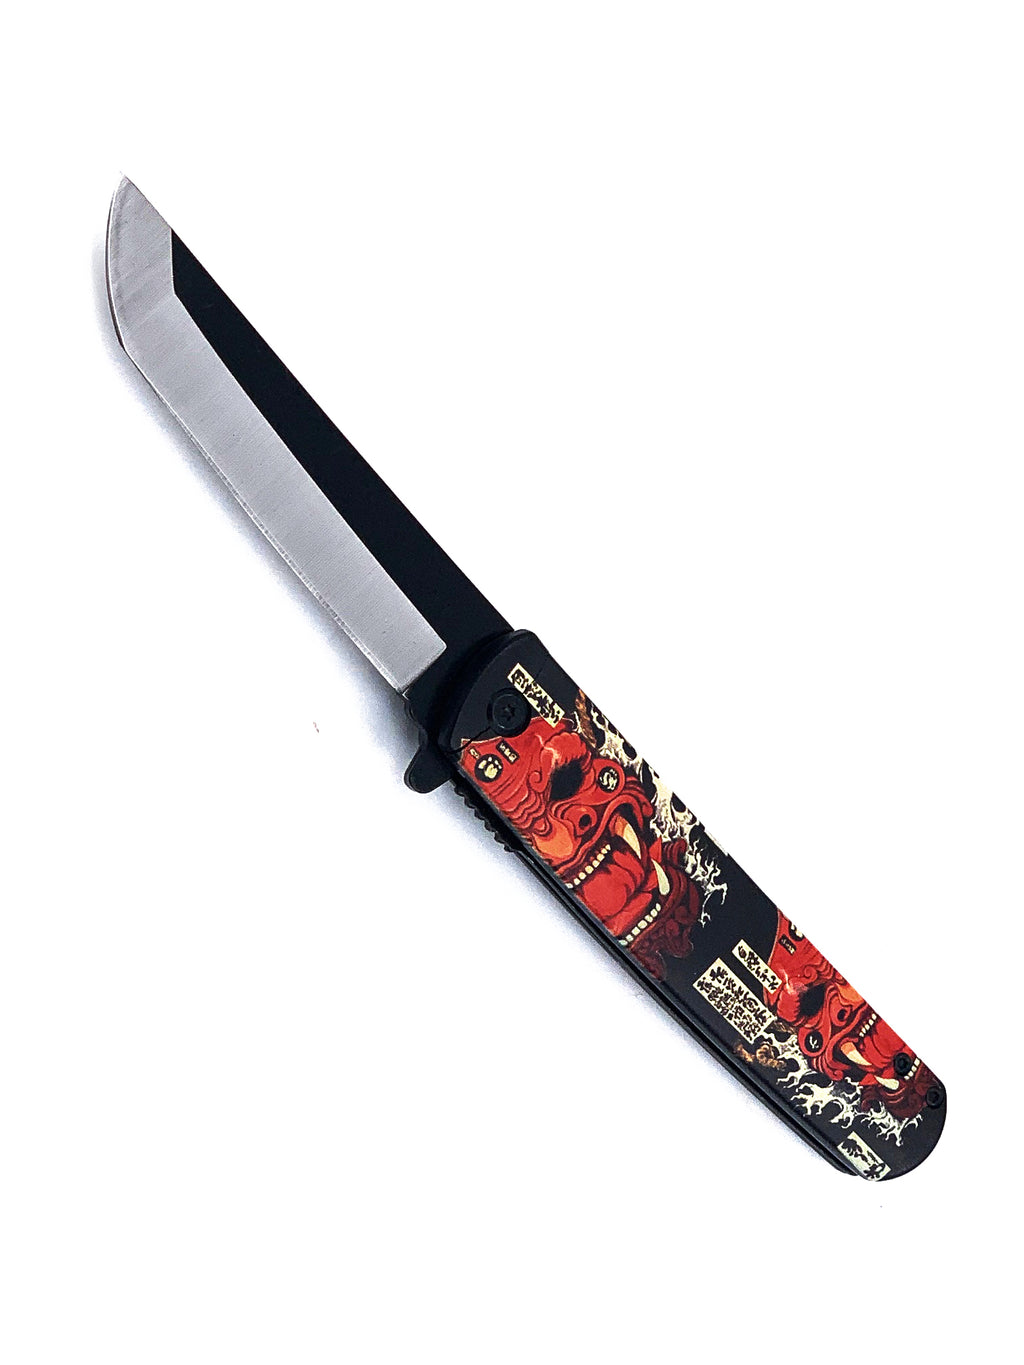 Fire Mask Samurai Spring Assisted Pocket Knife with Two Tone Rounded Tanto Blade